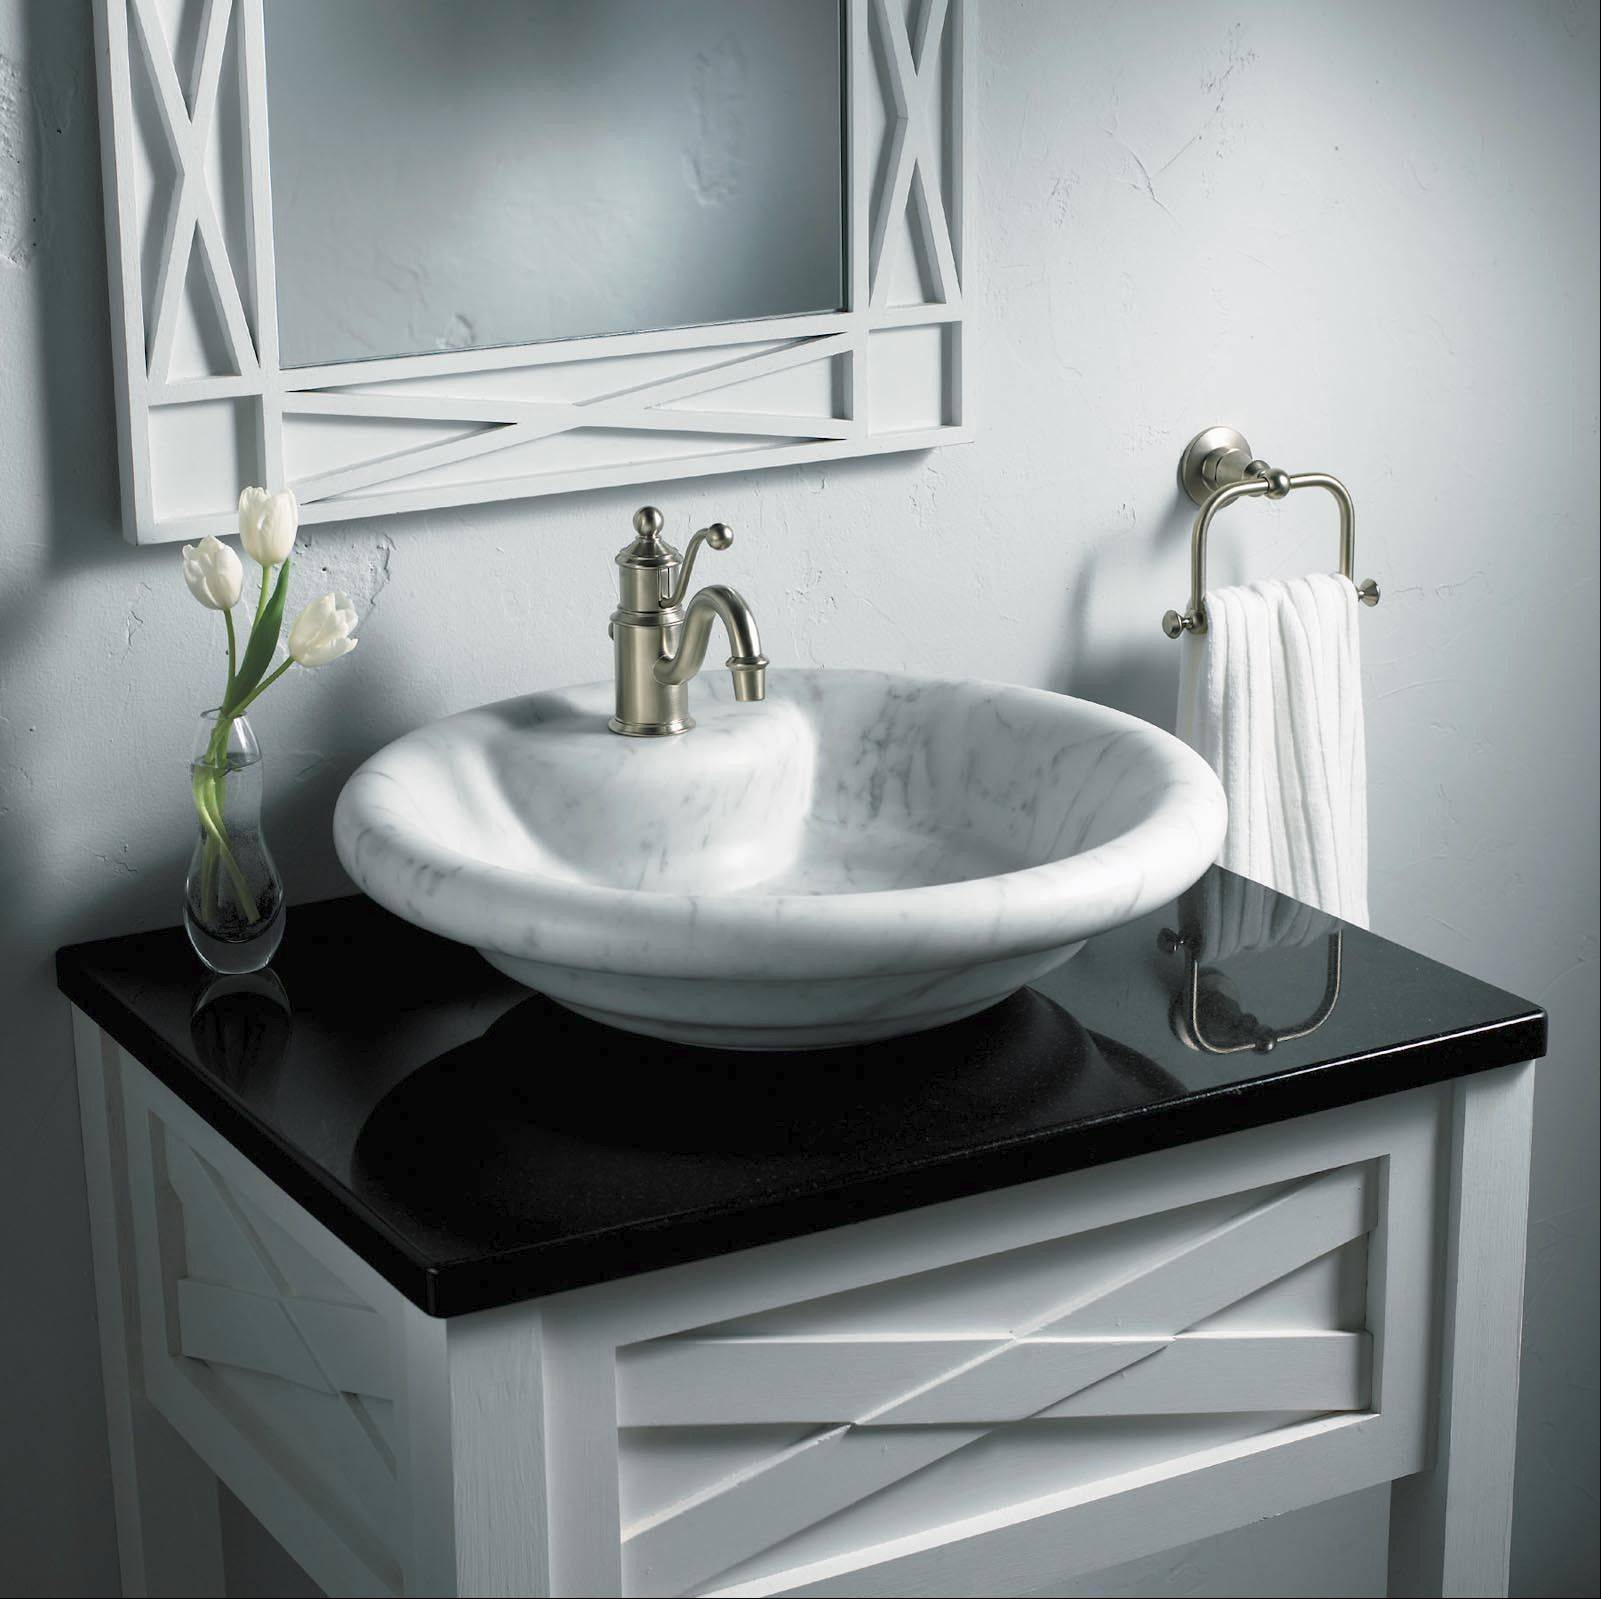 A vessel sink sits on top of the counter rather than being mounted in or below the countertop.